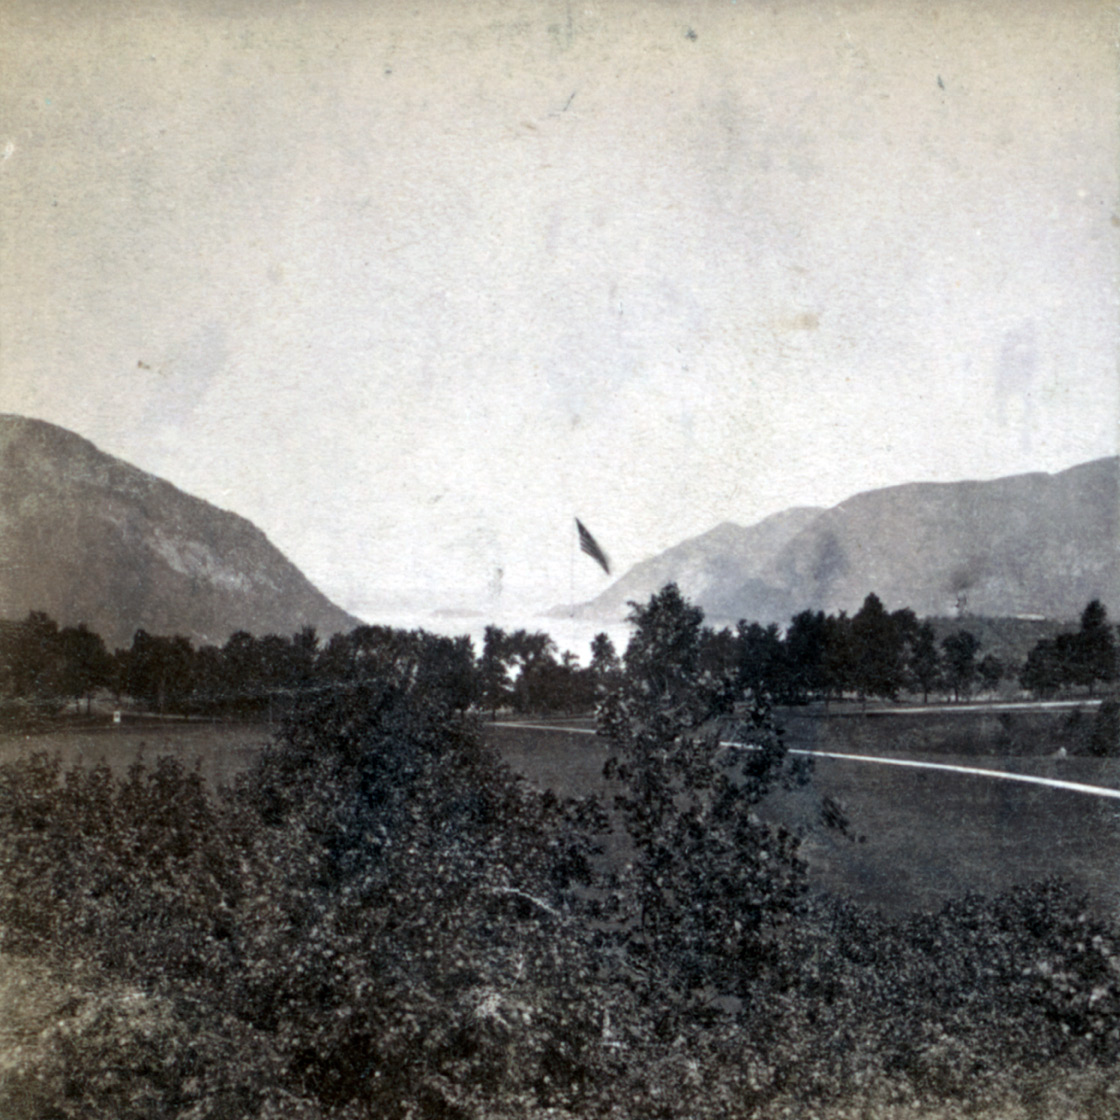 West Point Flag Pole, 19th century, exact date unknown.Source: The New York Public Library